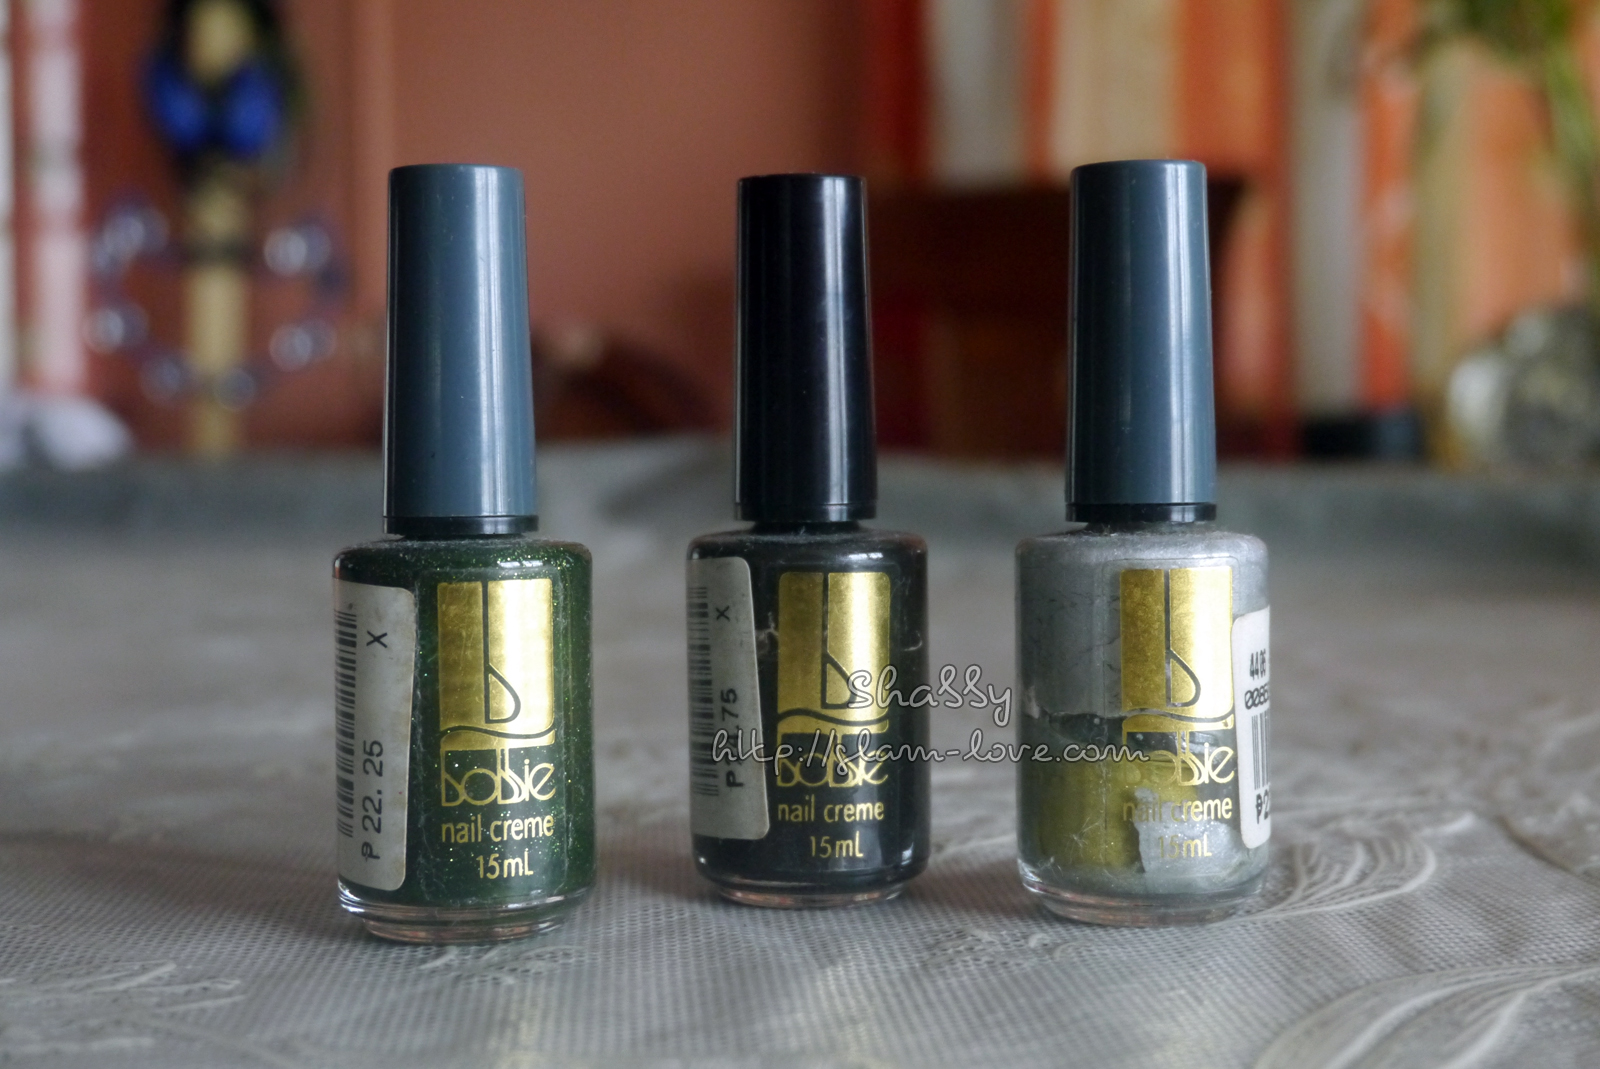 Really old nail polishes and a nail hardener – Glam Love